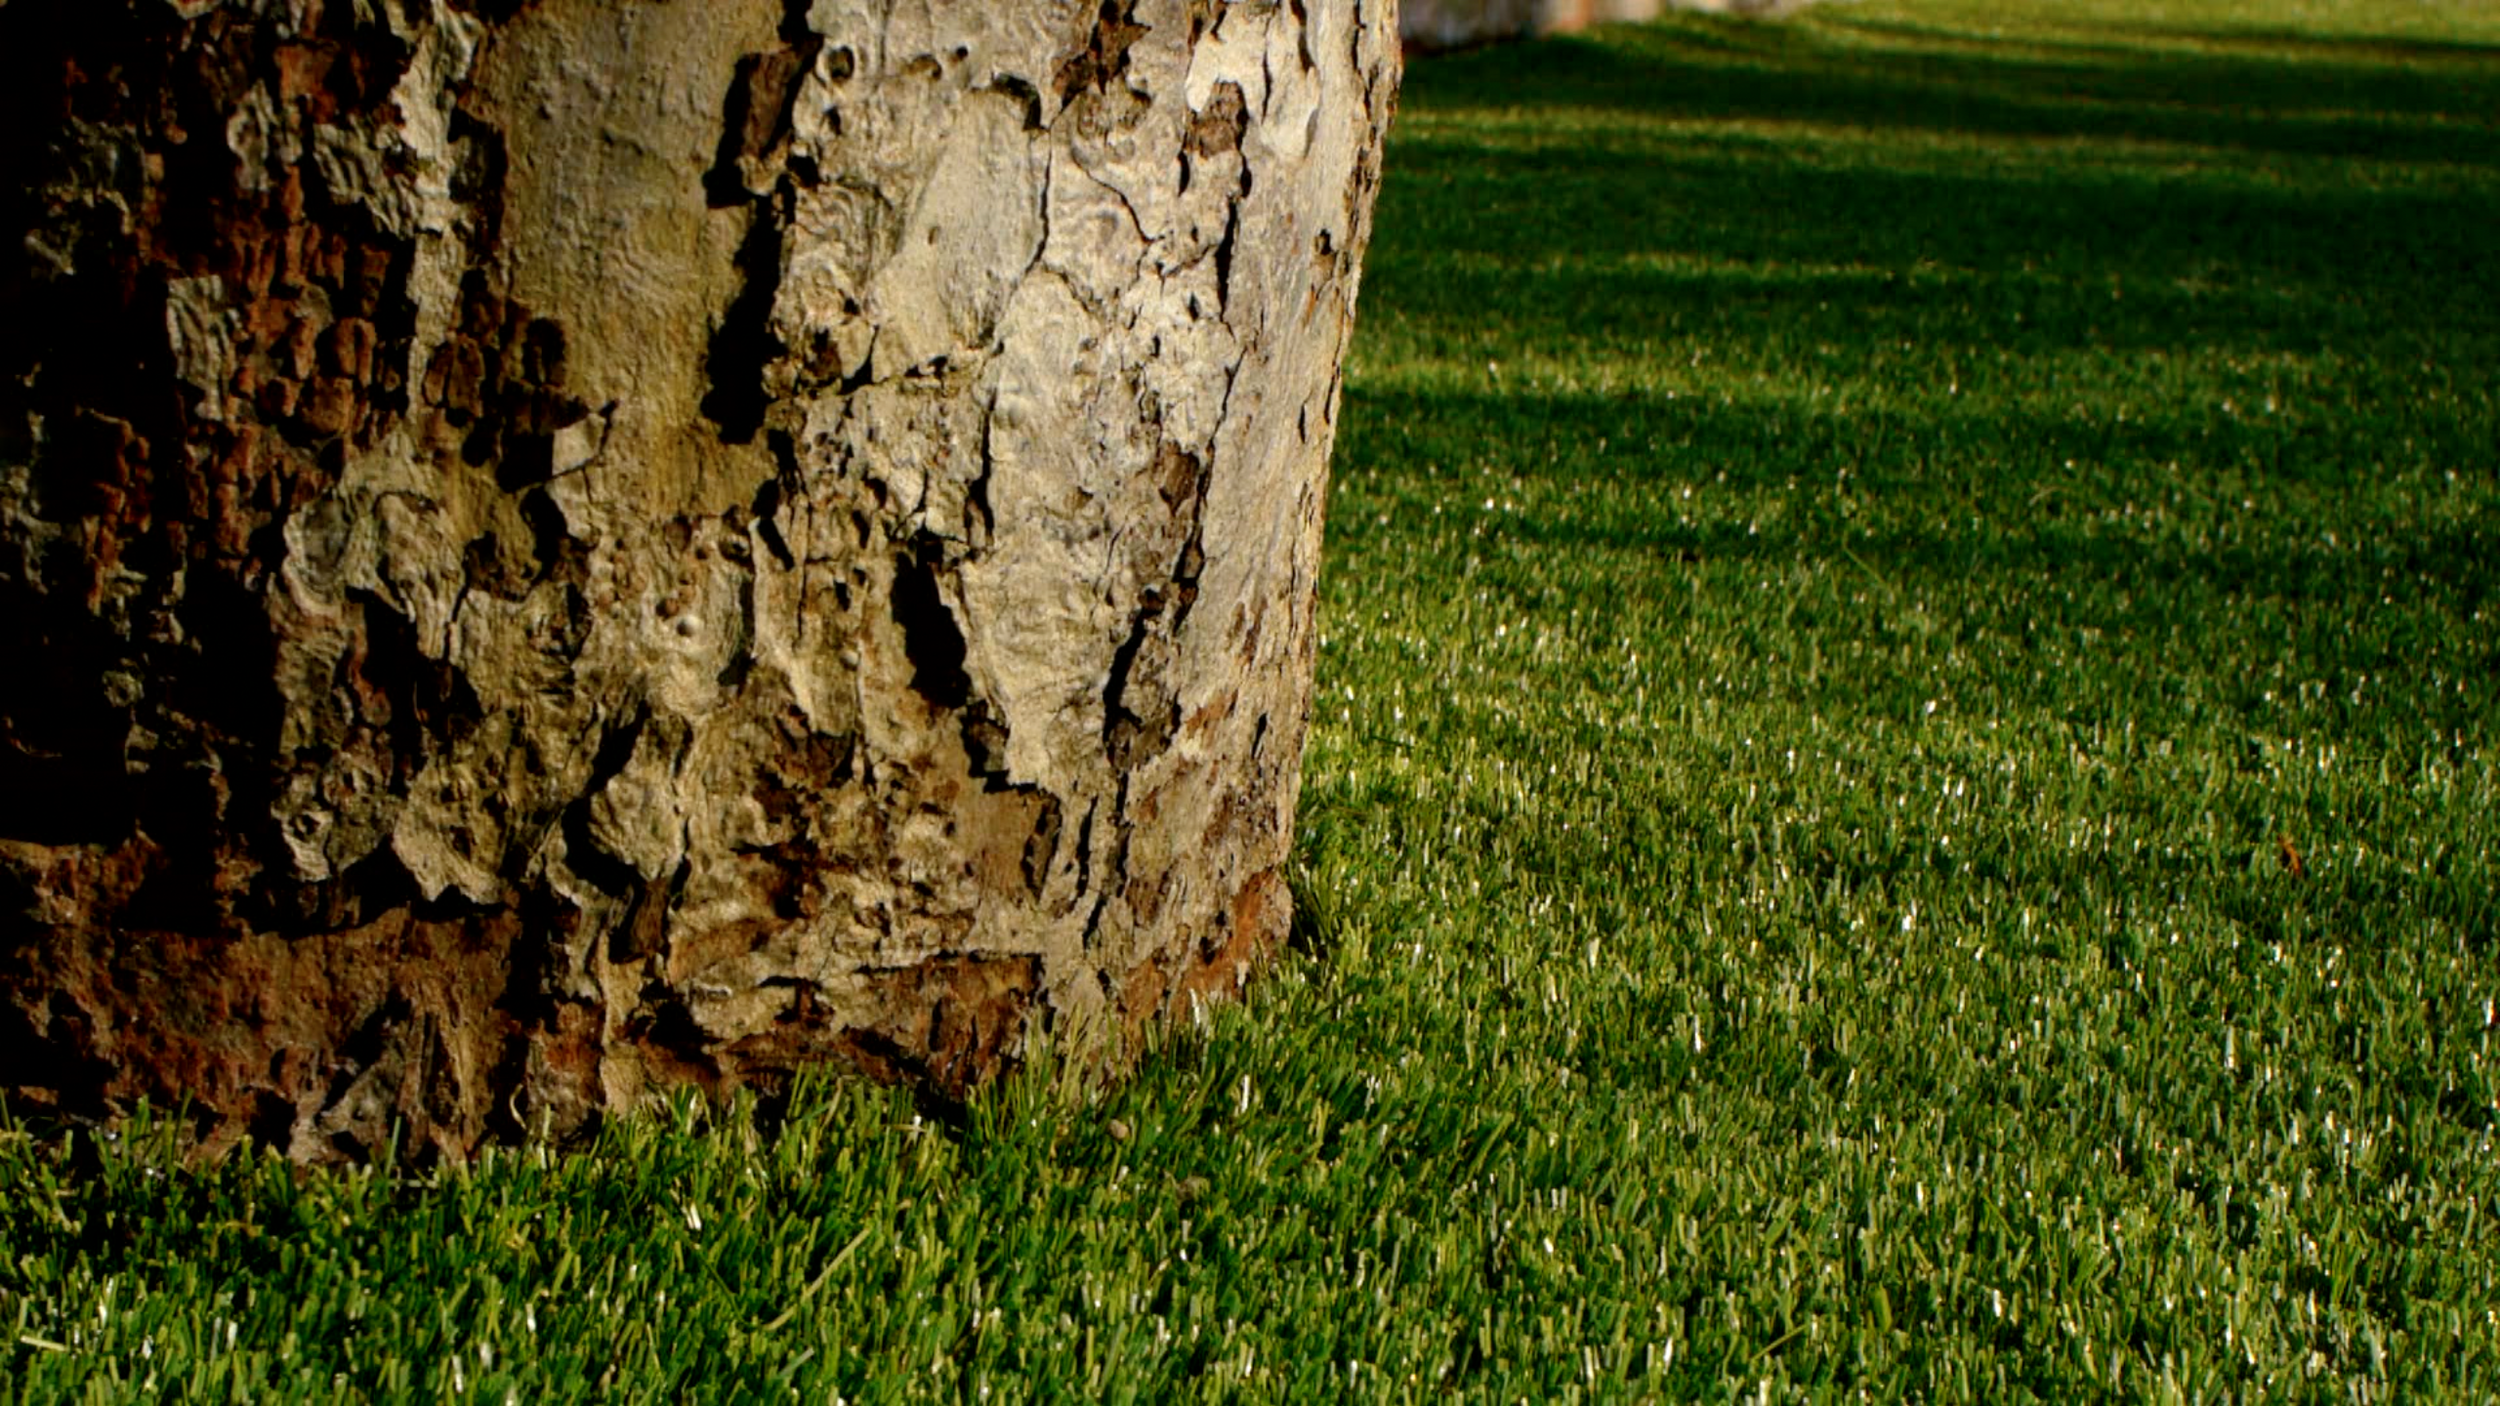 close up of tree and lawn